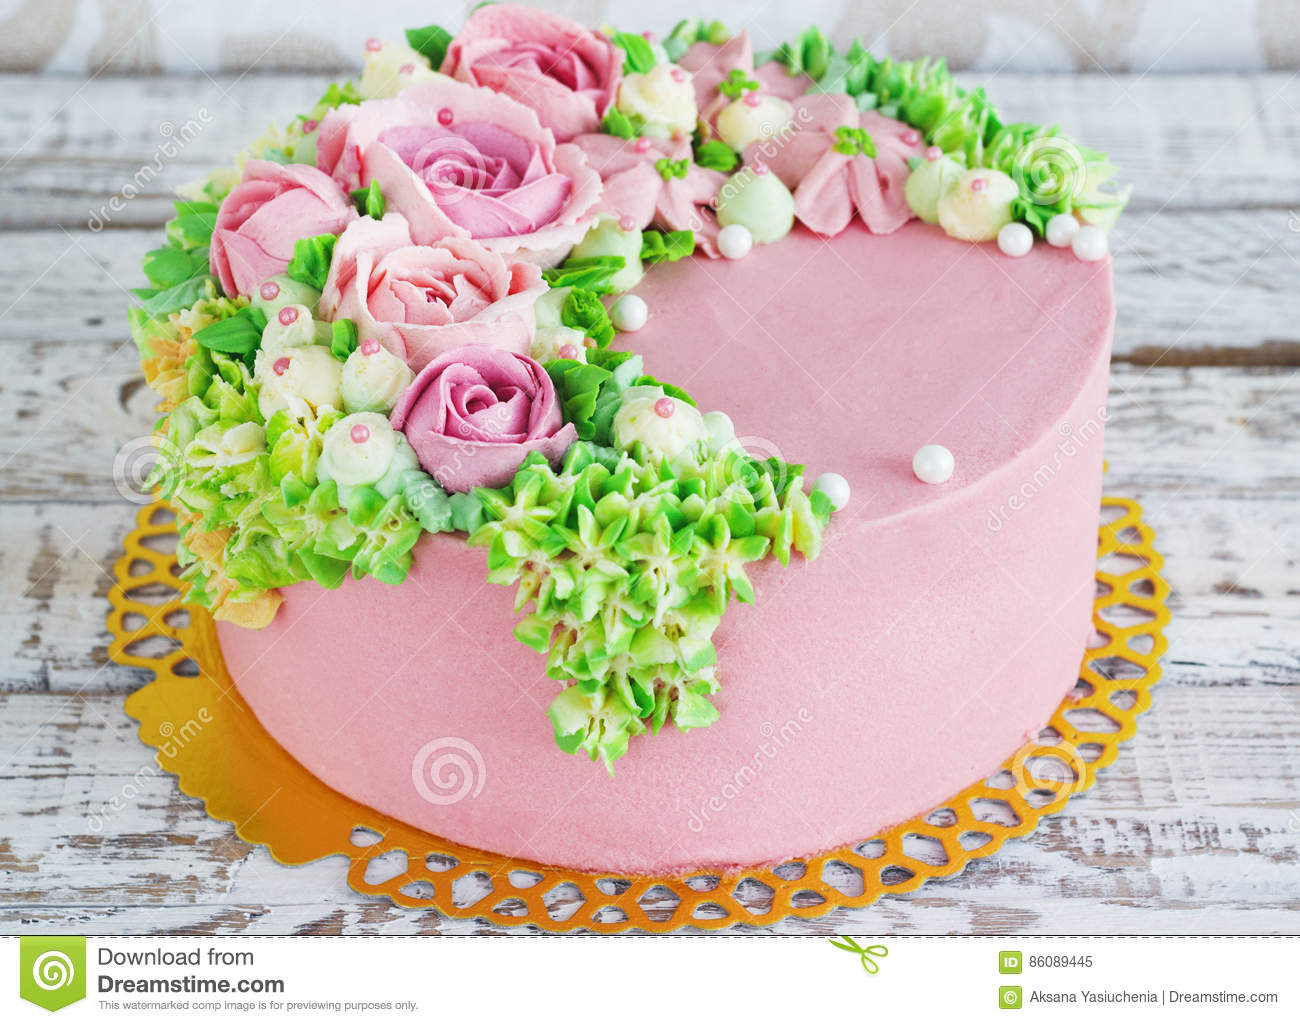 Birthday Cake With Flowers Birthday Cake With Flowers Rose On White Background Stock Image